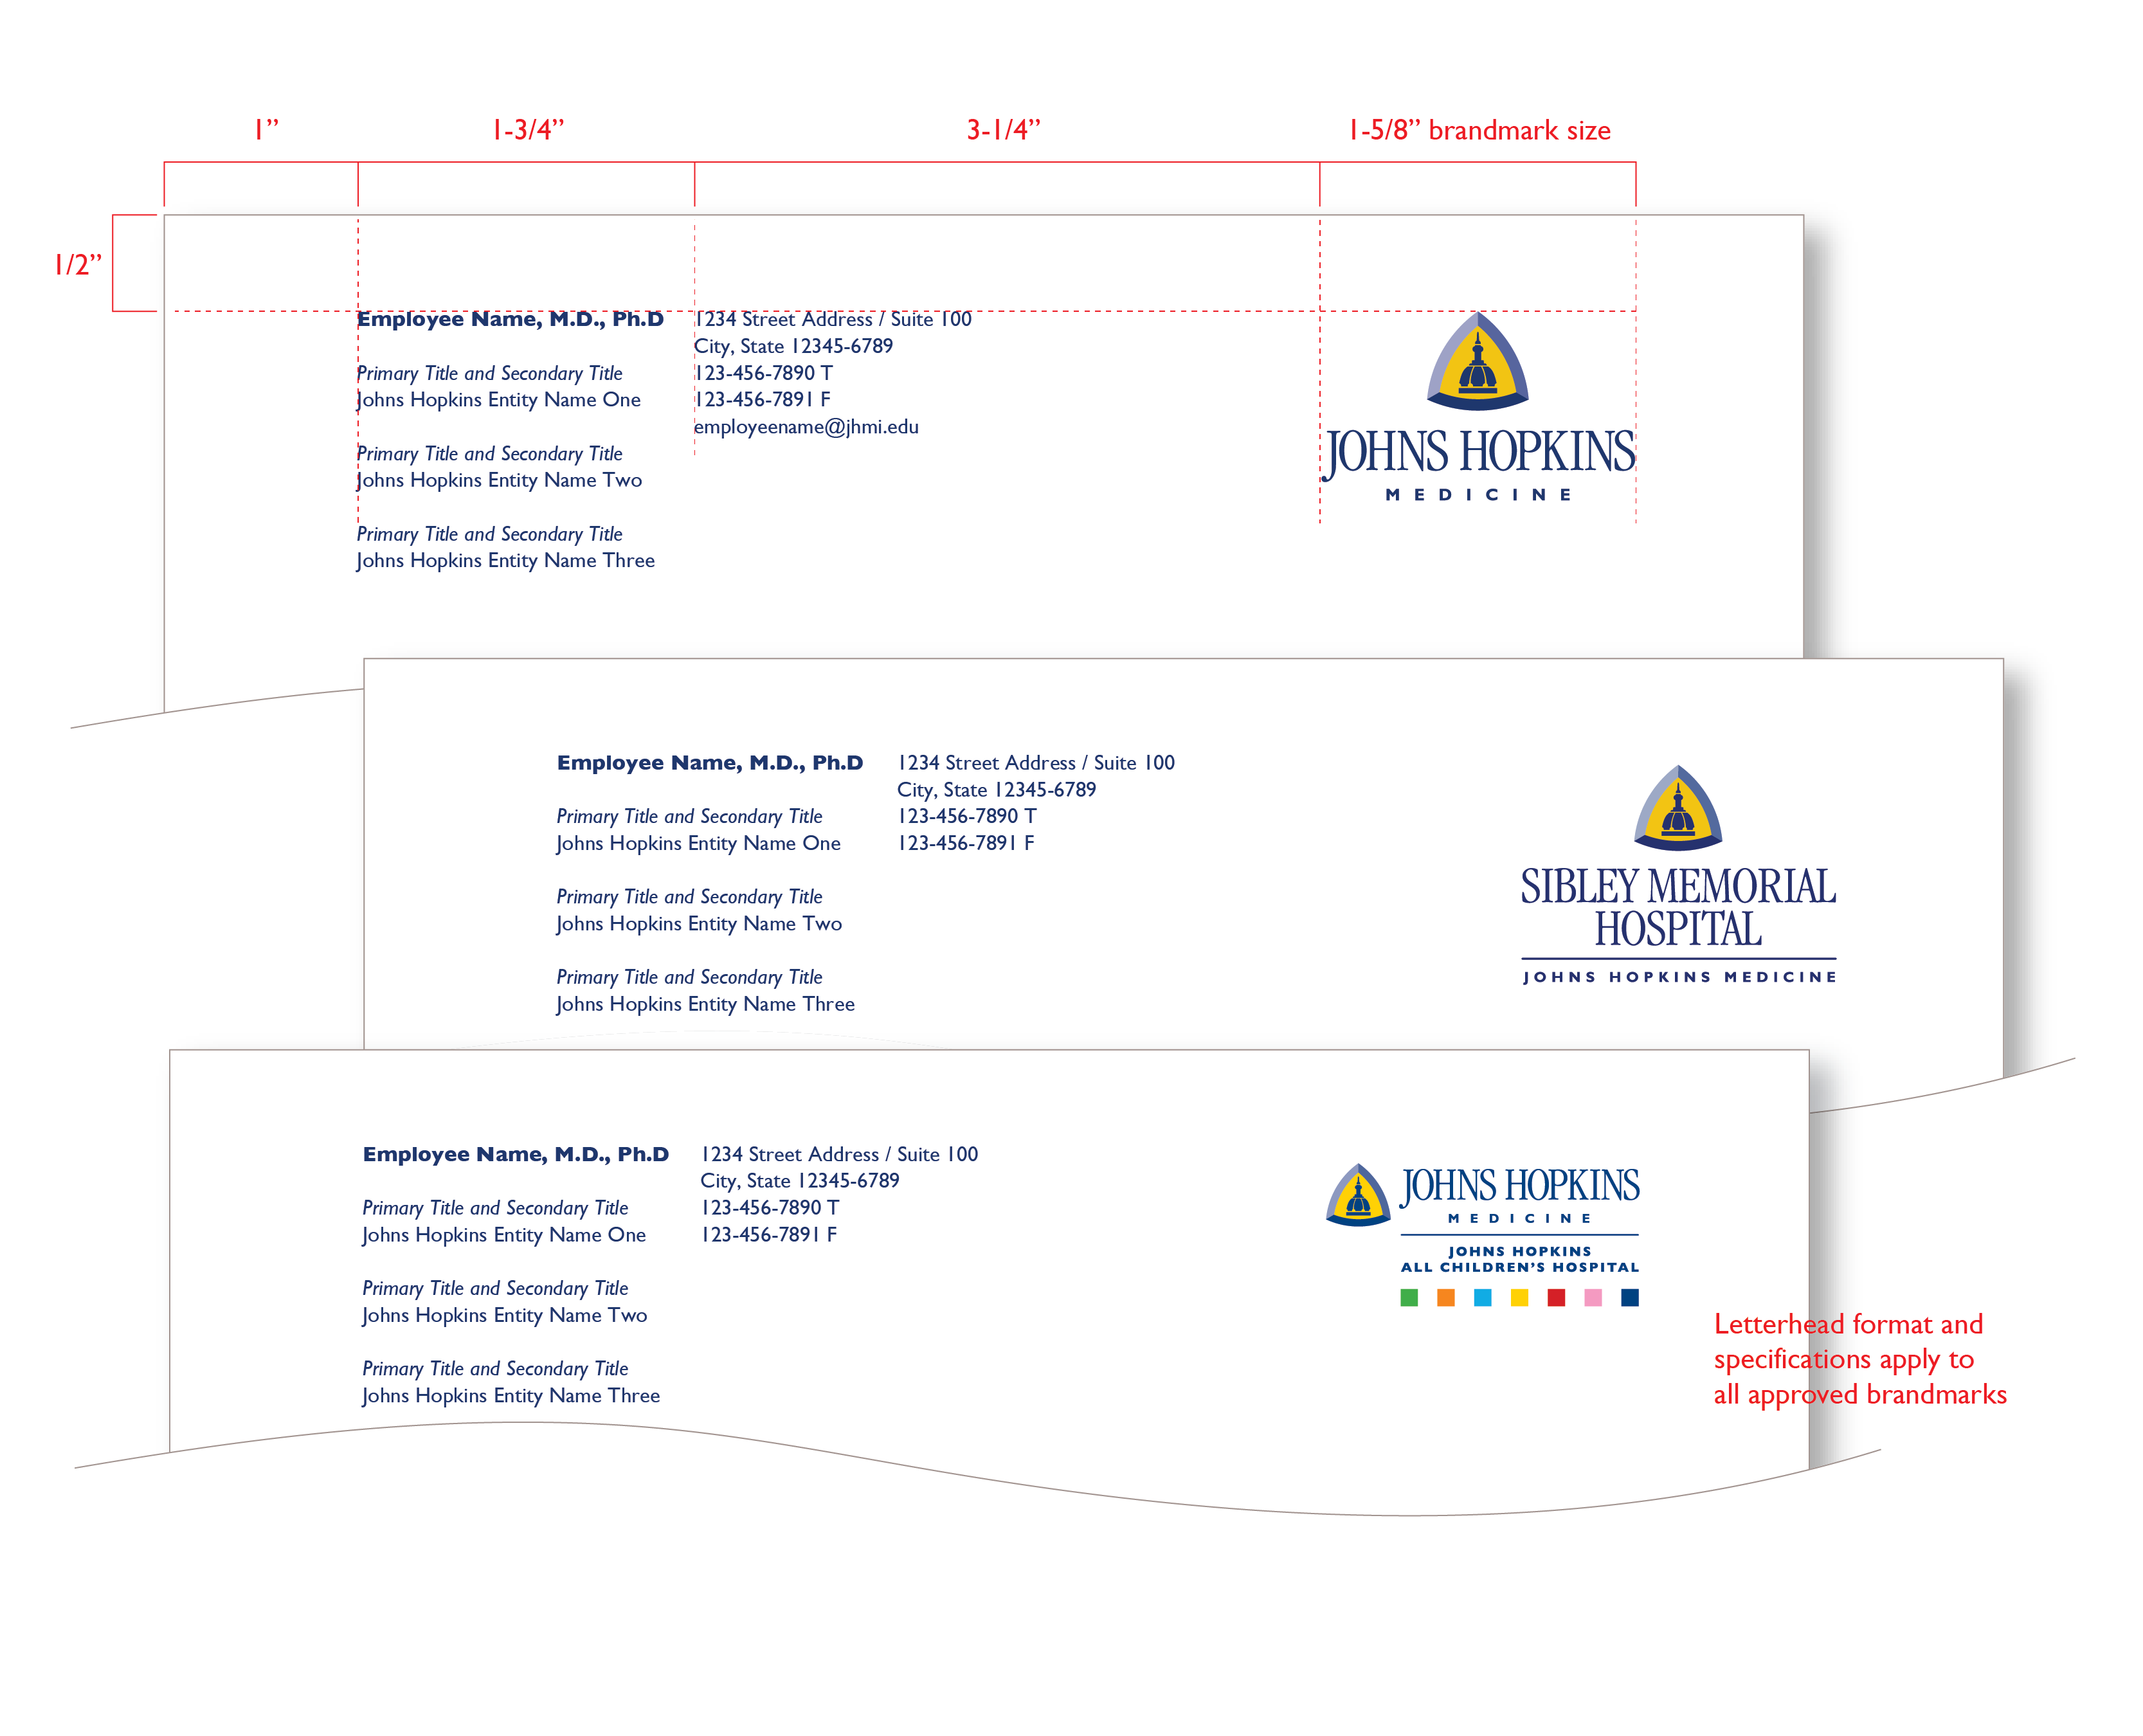 image of johns hopkins medicine personalized letterhead multiple entities